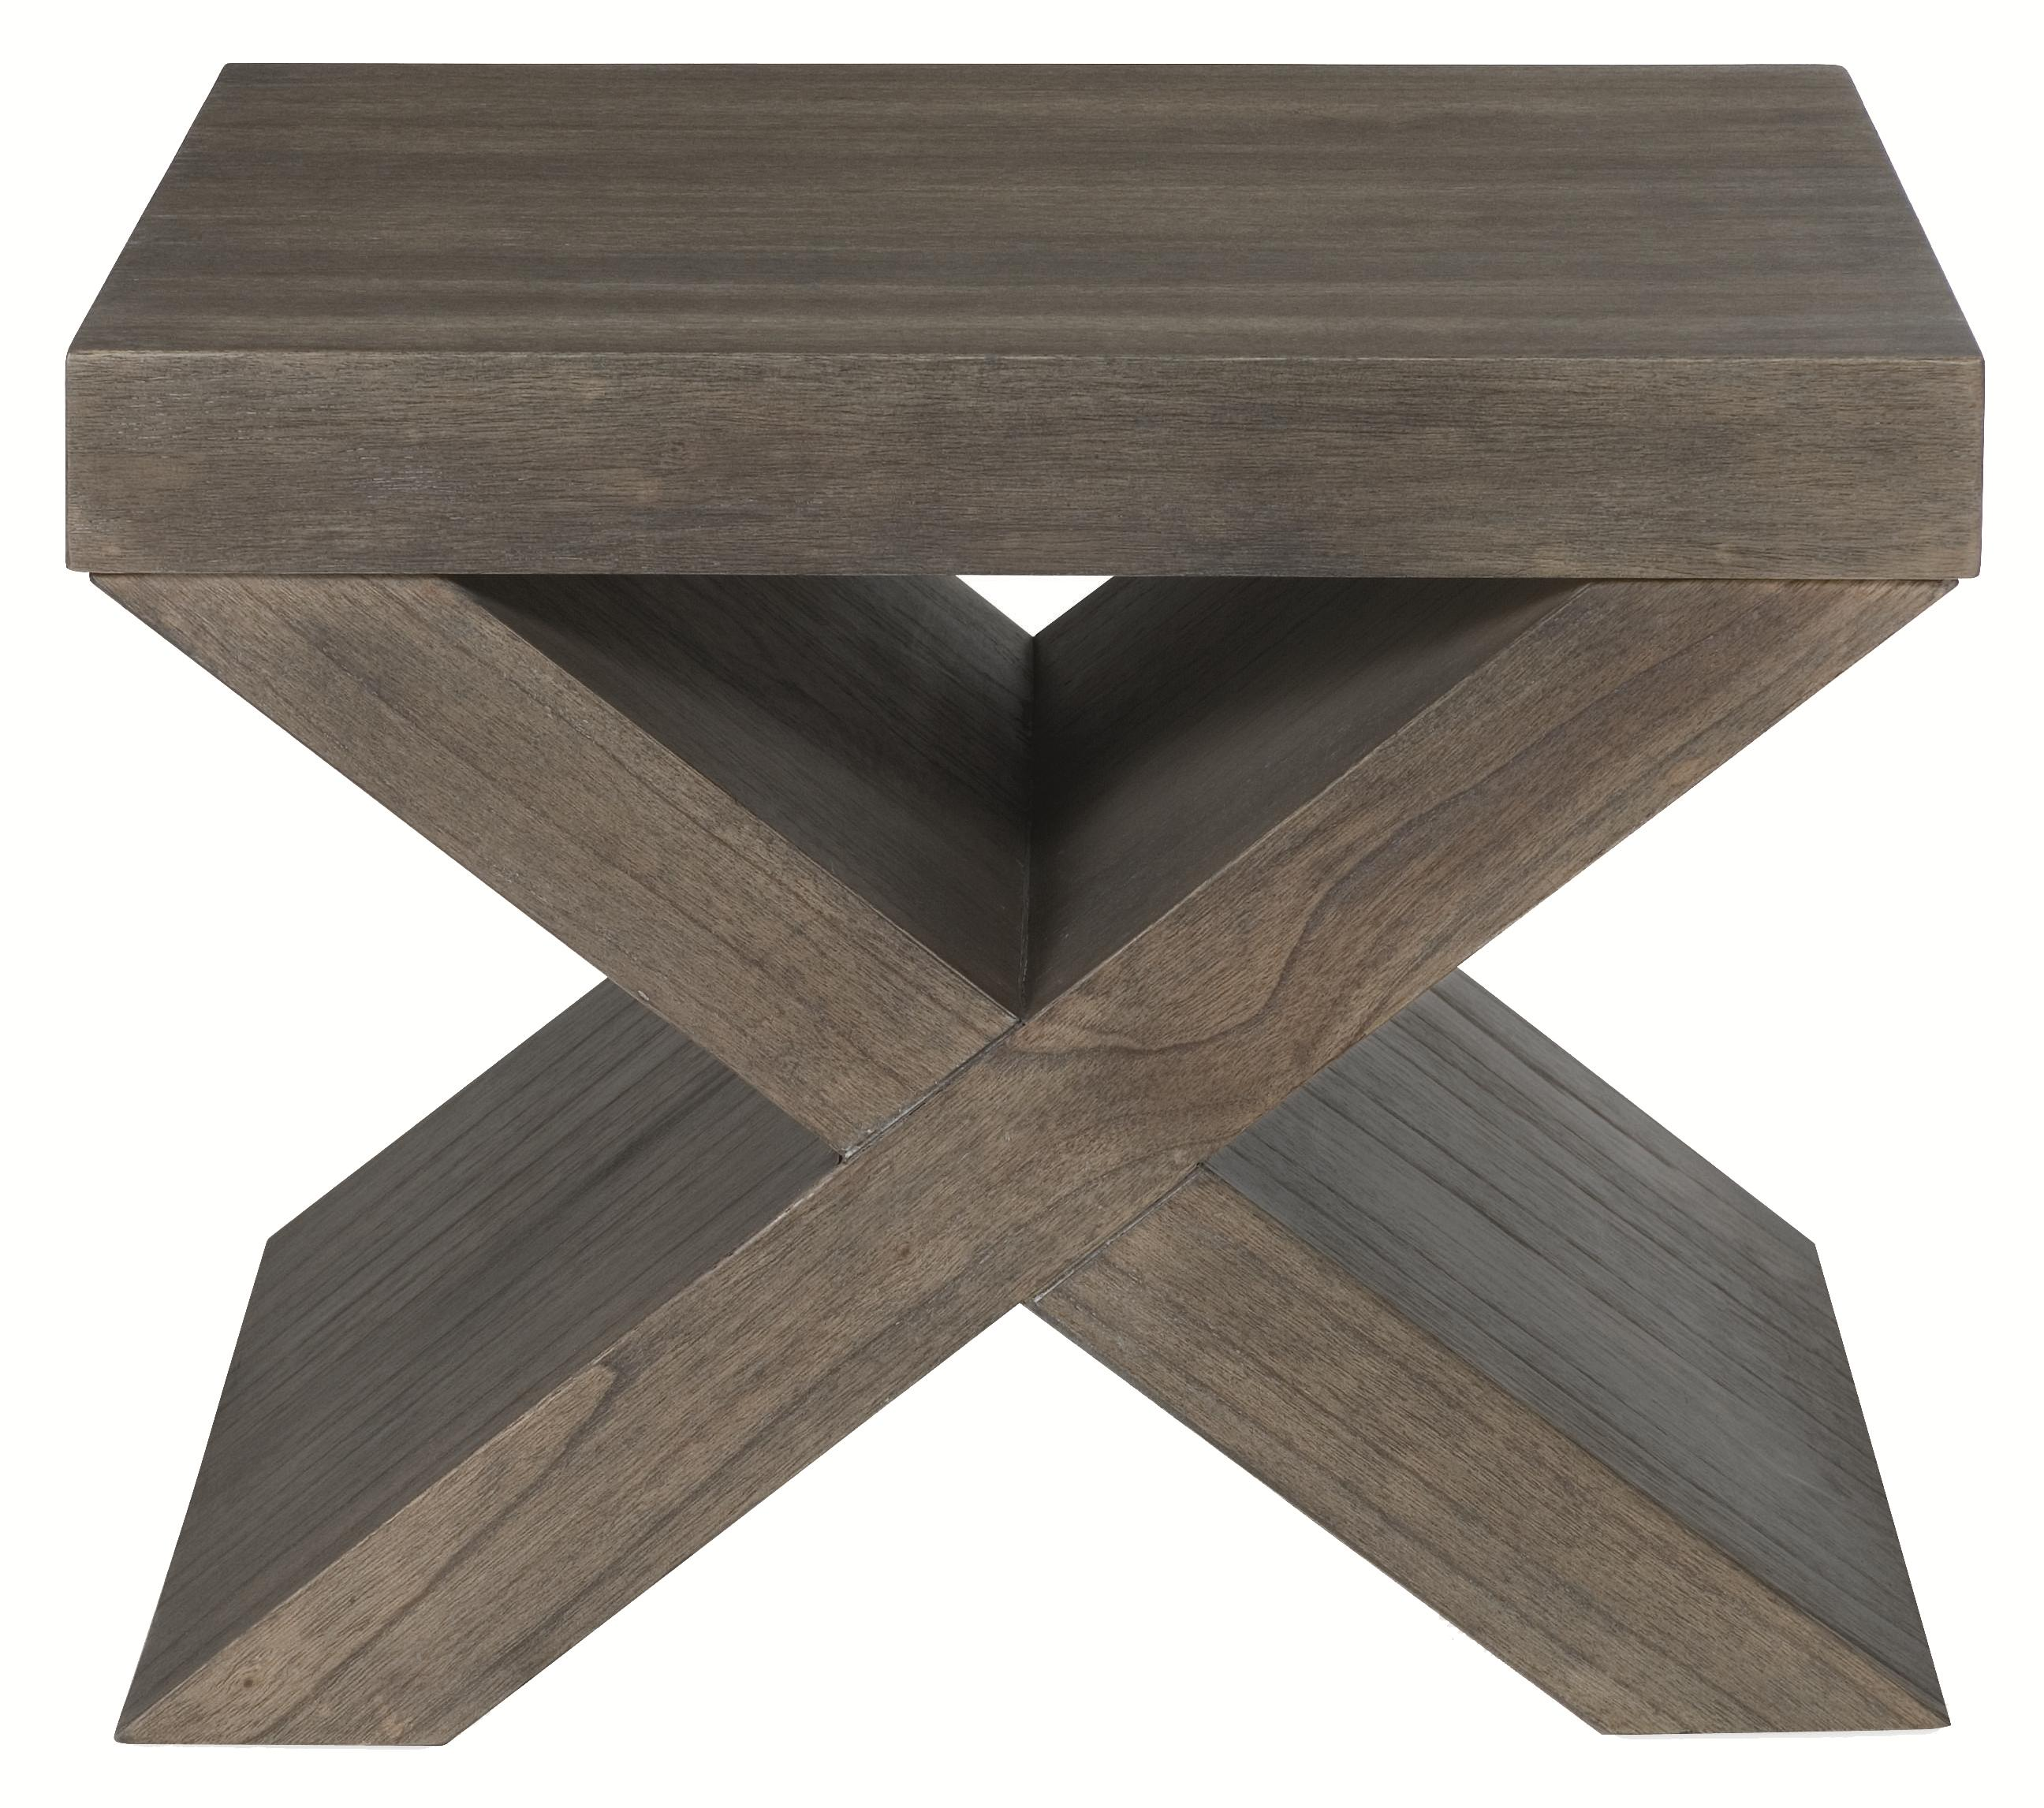 Bernhardt Interiors - Accents Irving Bunching Table - Item Number: 336-012